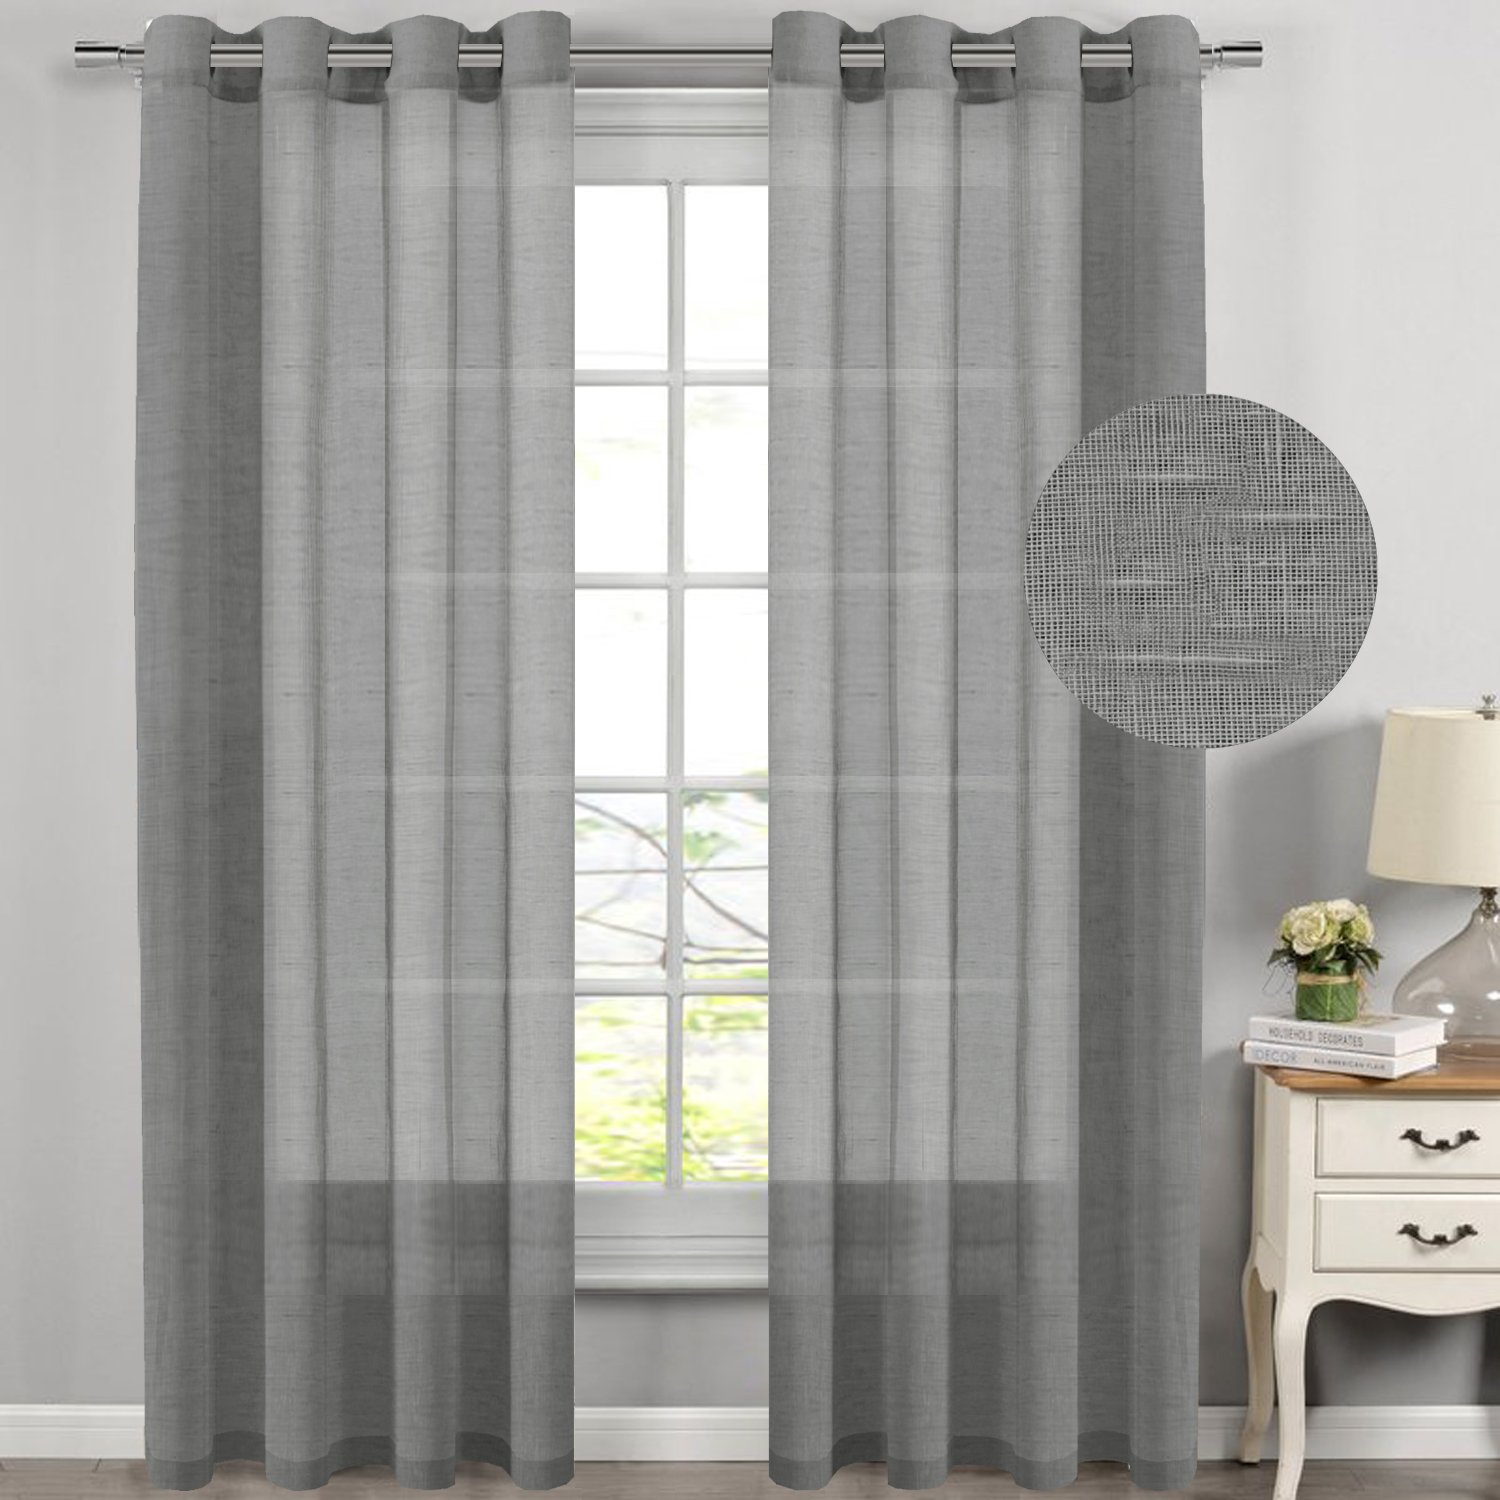 Window Curtain Panel Pair 52 by 84 Long, (2 Panels) Nickel Grommet Top Highly Durable Natural Linen Poly Blend Soft Sheer Curtains for Living Room - White H.Versailtex